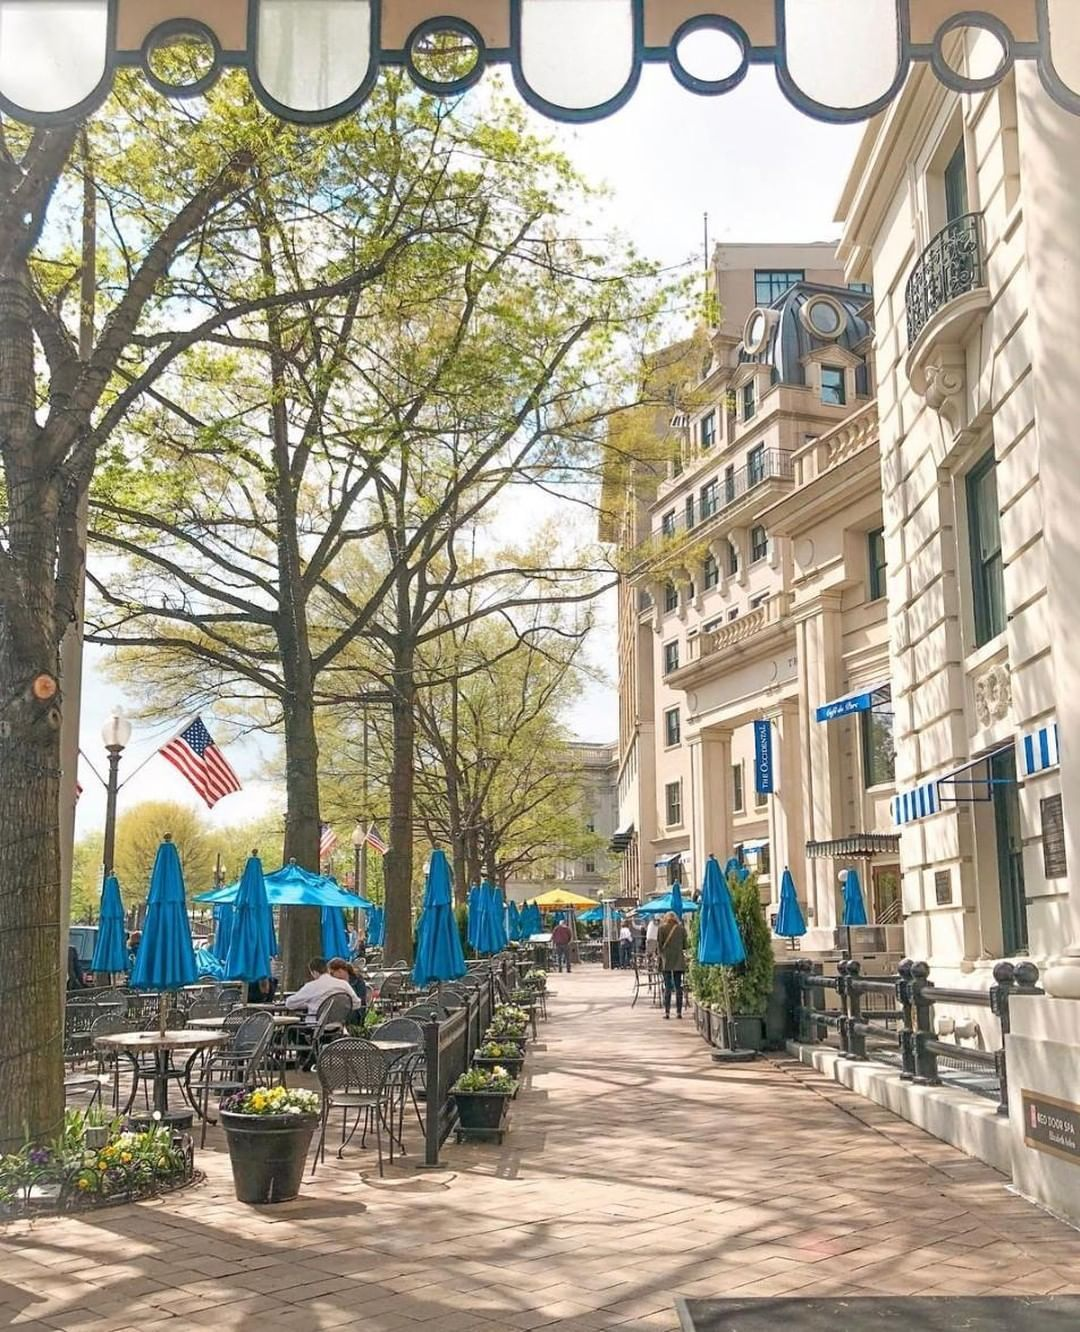 Willard Intercontinental D C On Instagram A Walk Past The Willard Is Never Complete Without A Stop At Cafe Du Parc Come See Summer Menu Walk Past Instagram